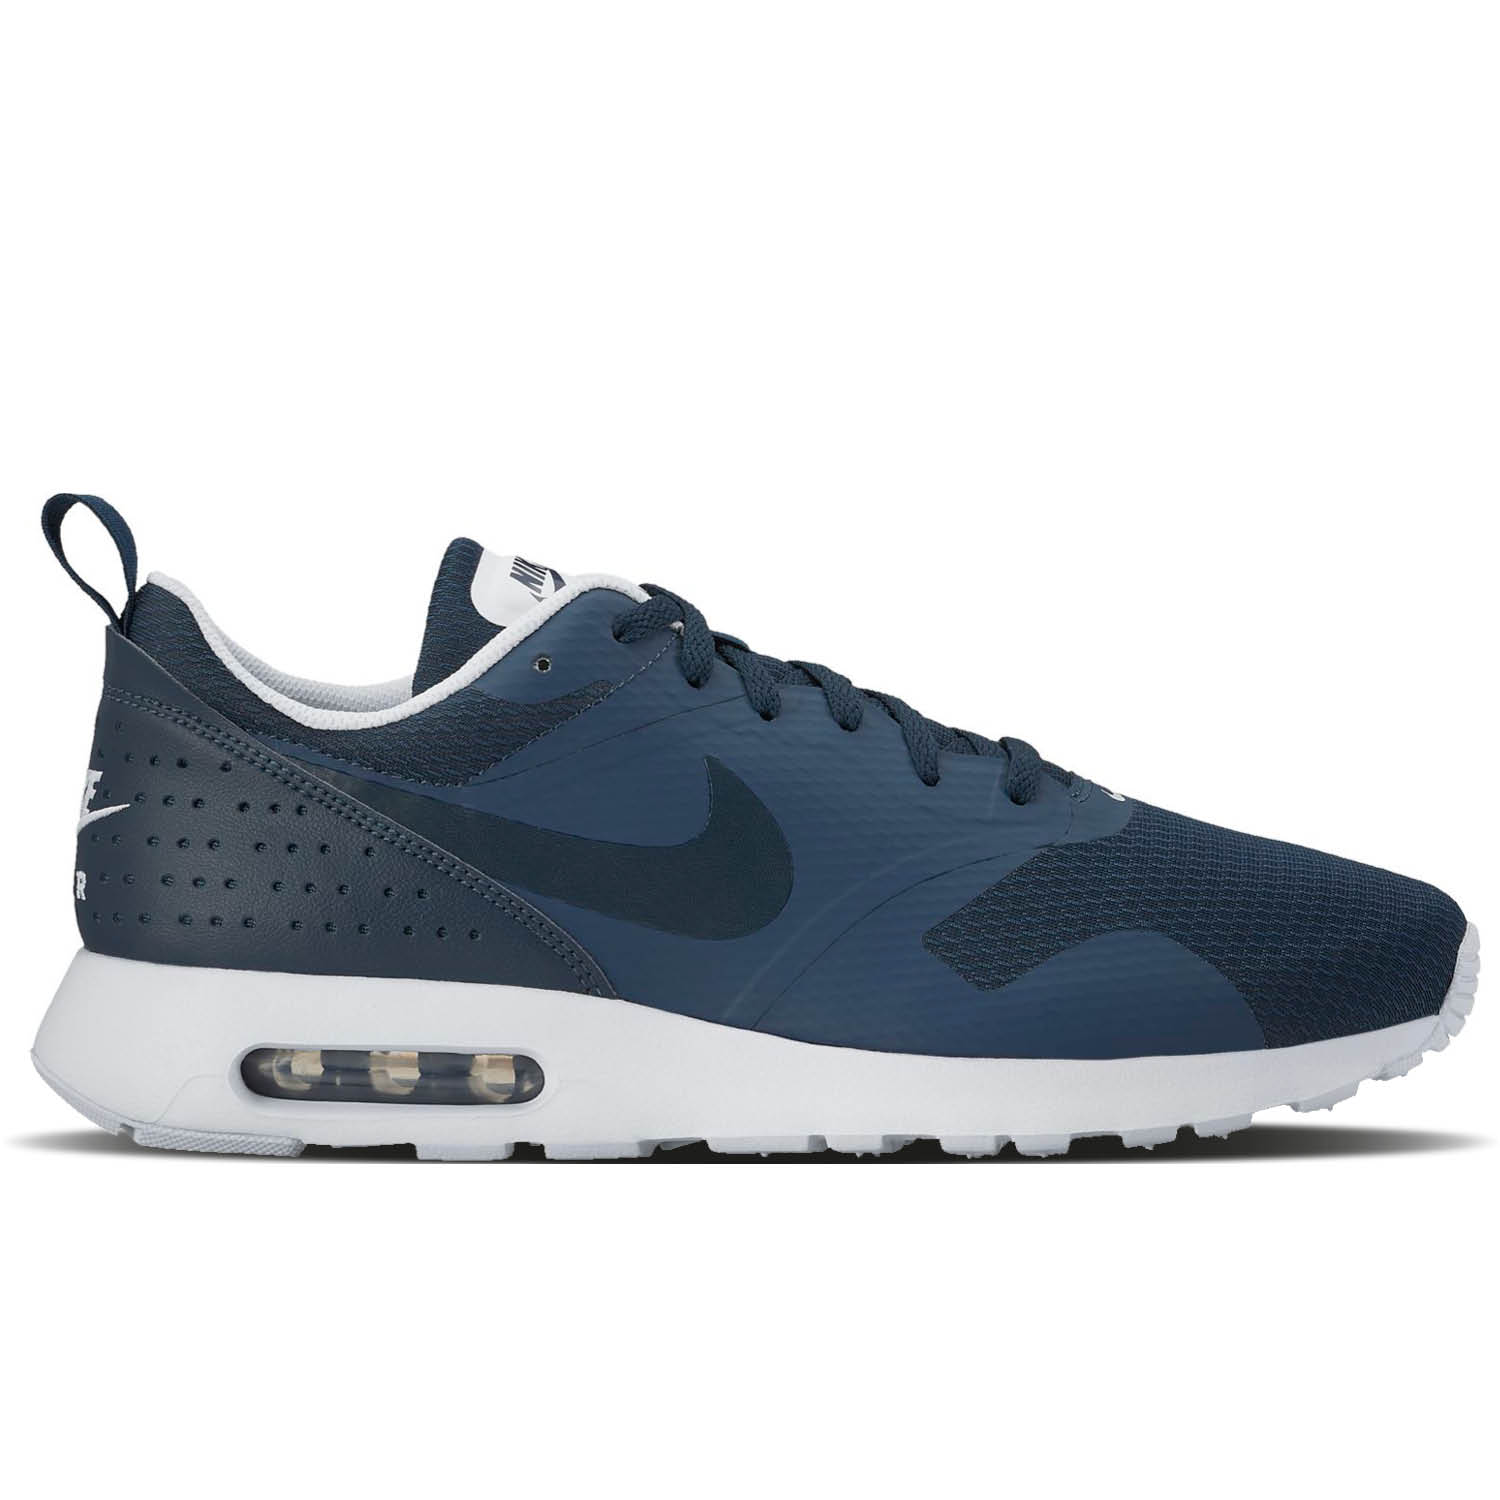 purchase cheap c9662 18d34 Donkerblauwe heren sneaker Nike Air Max Tavas - 705149 409